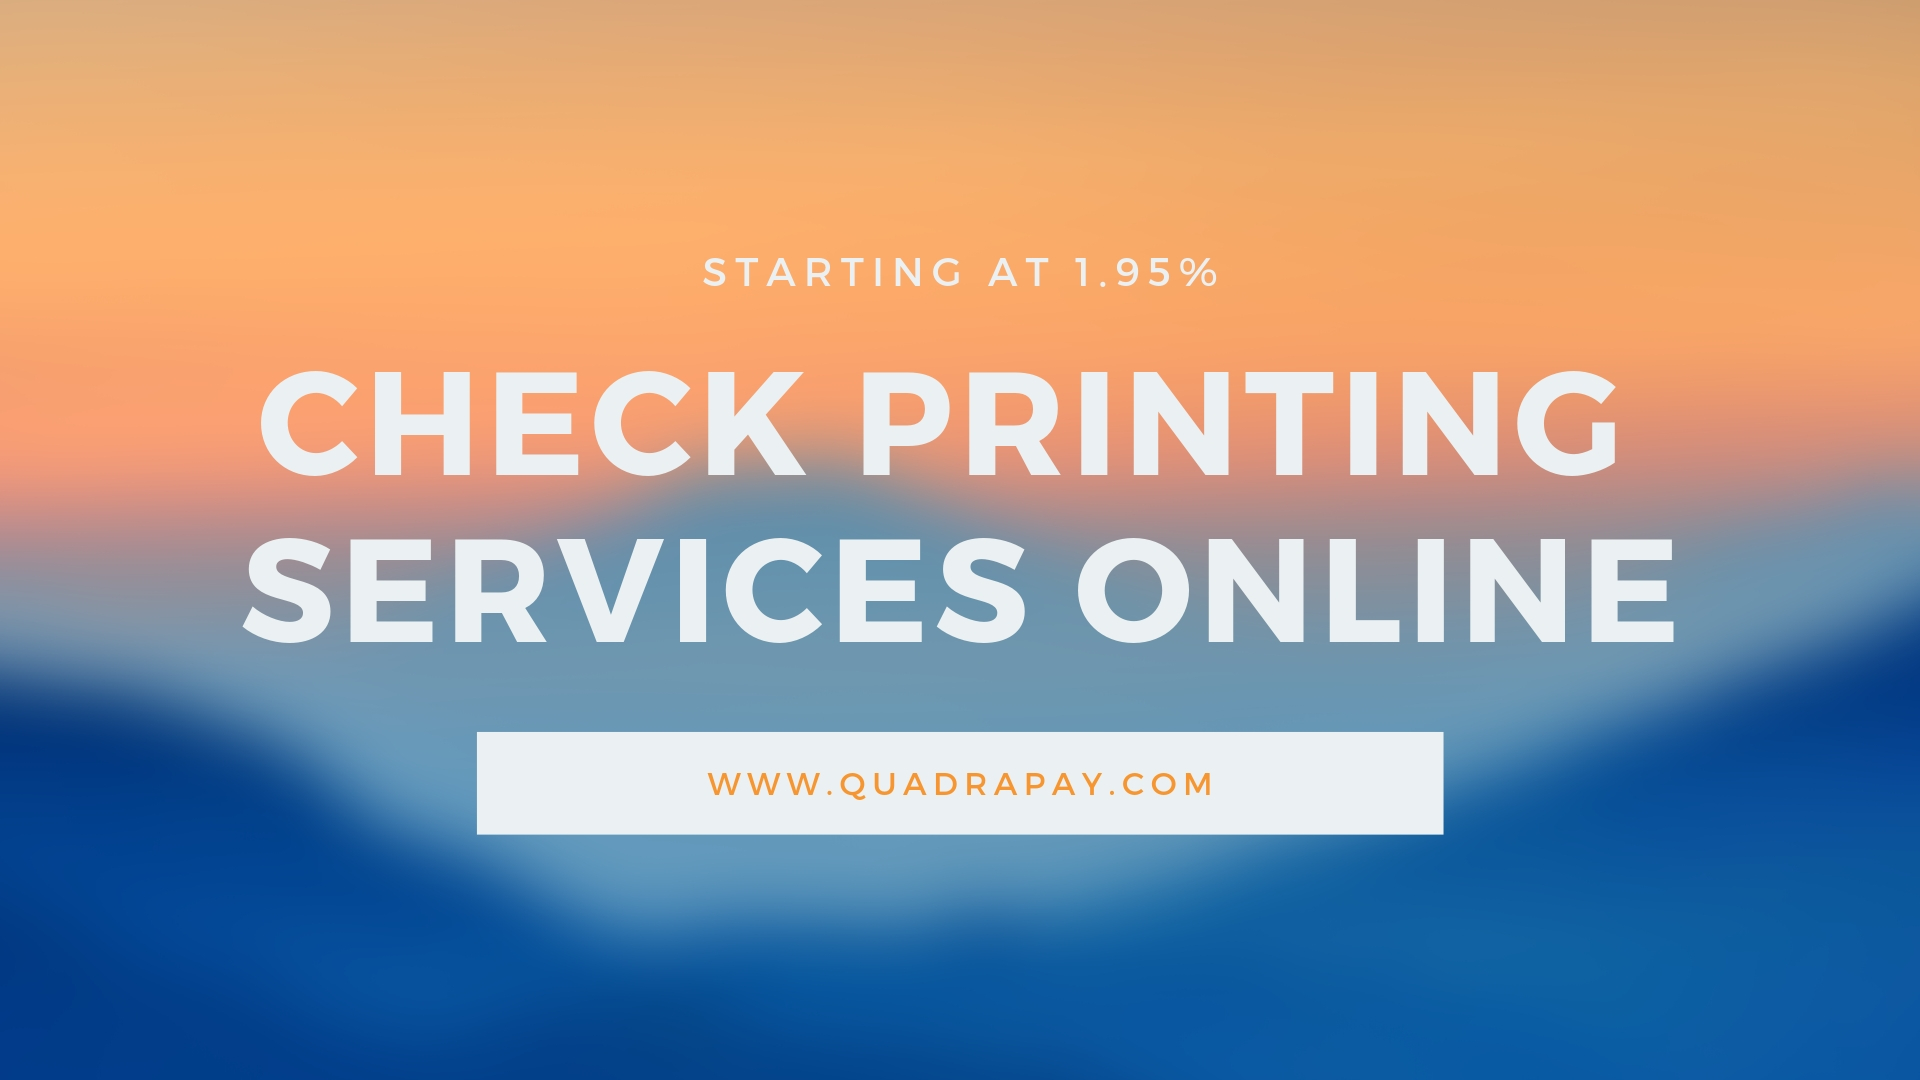 Check Printing Services Online